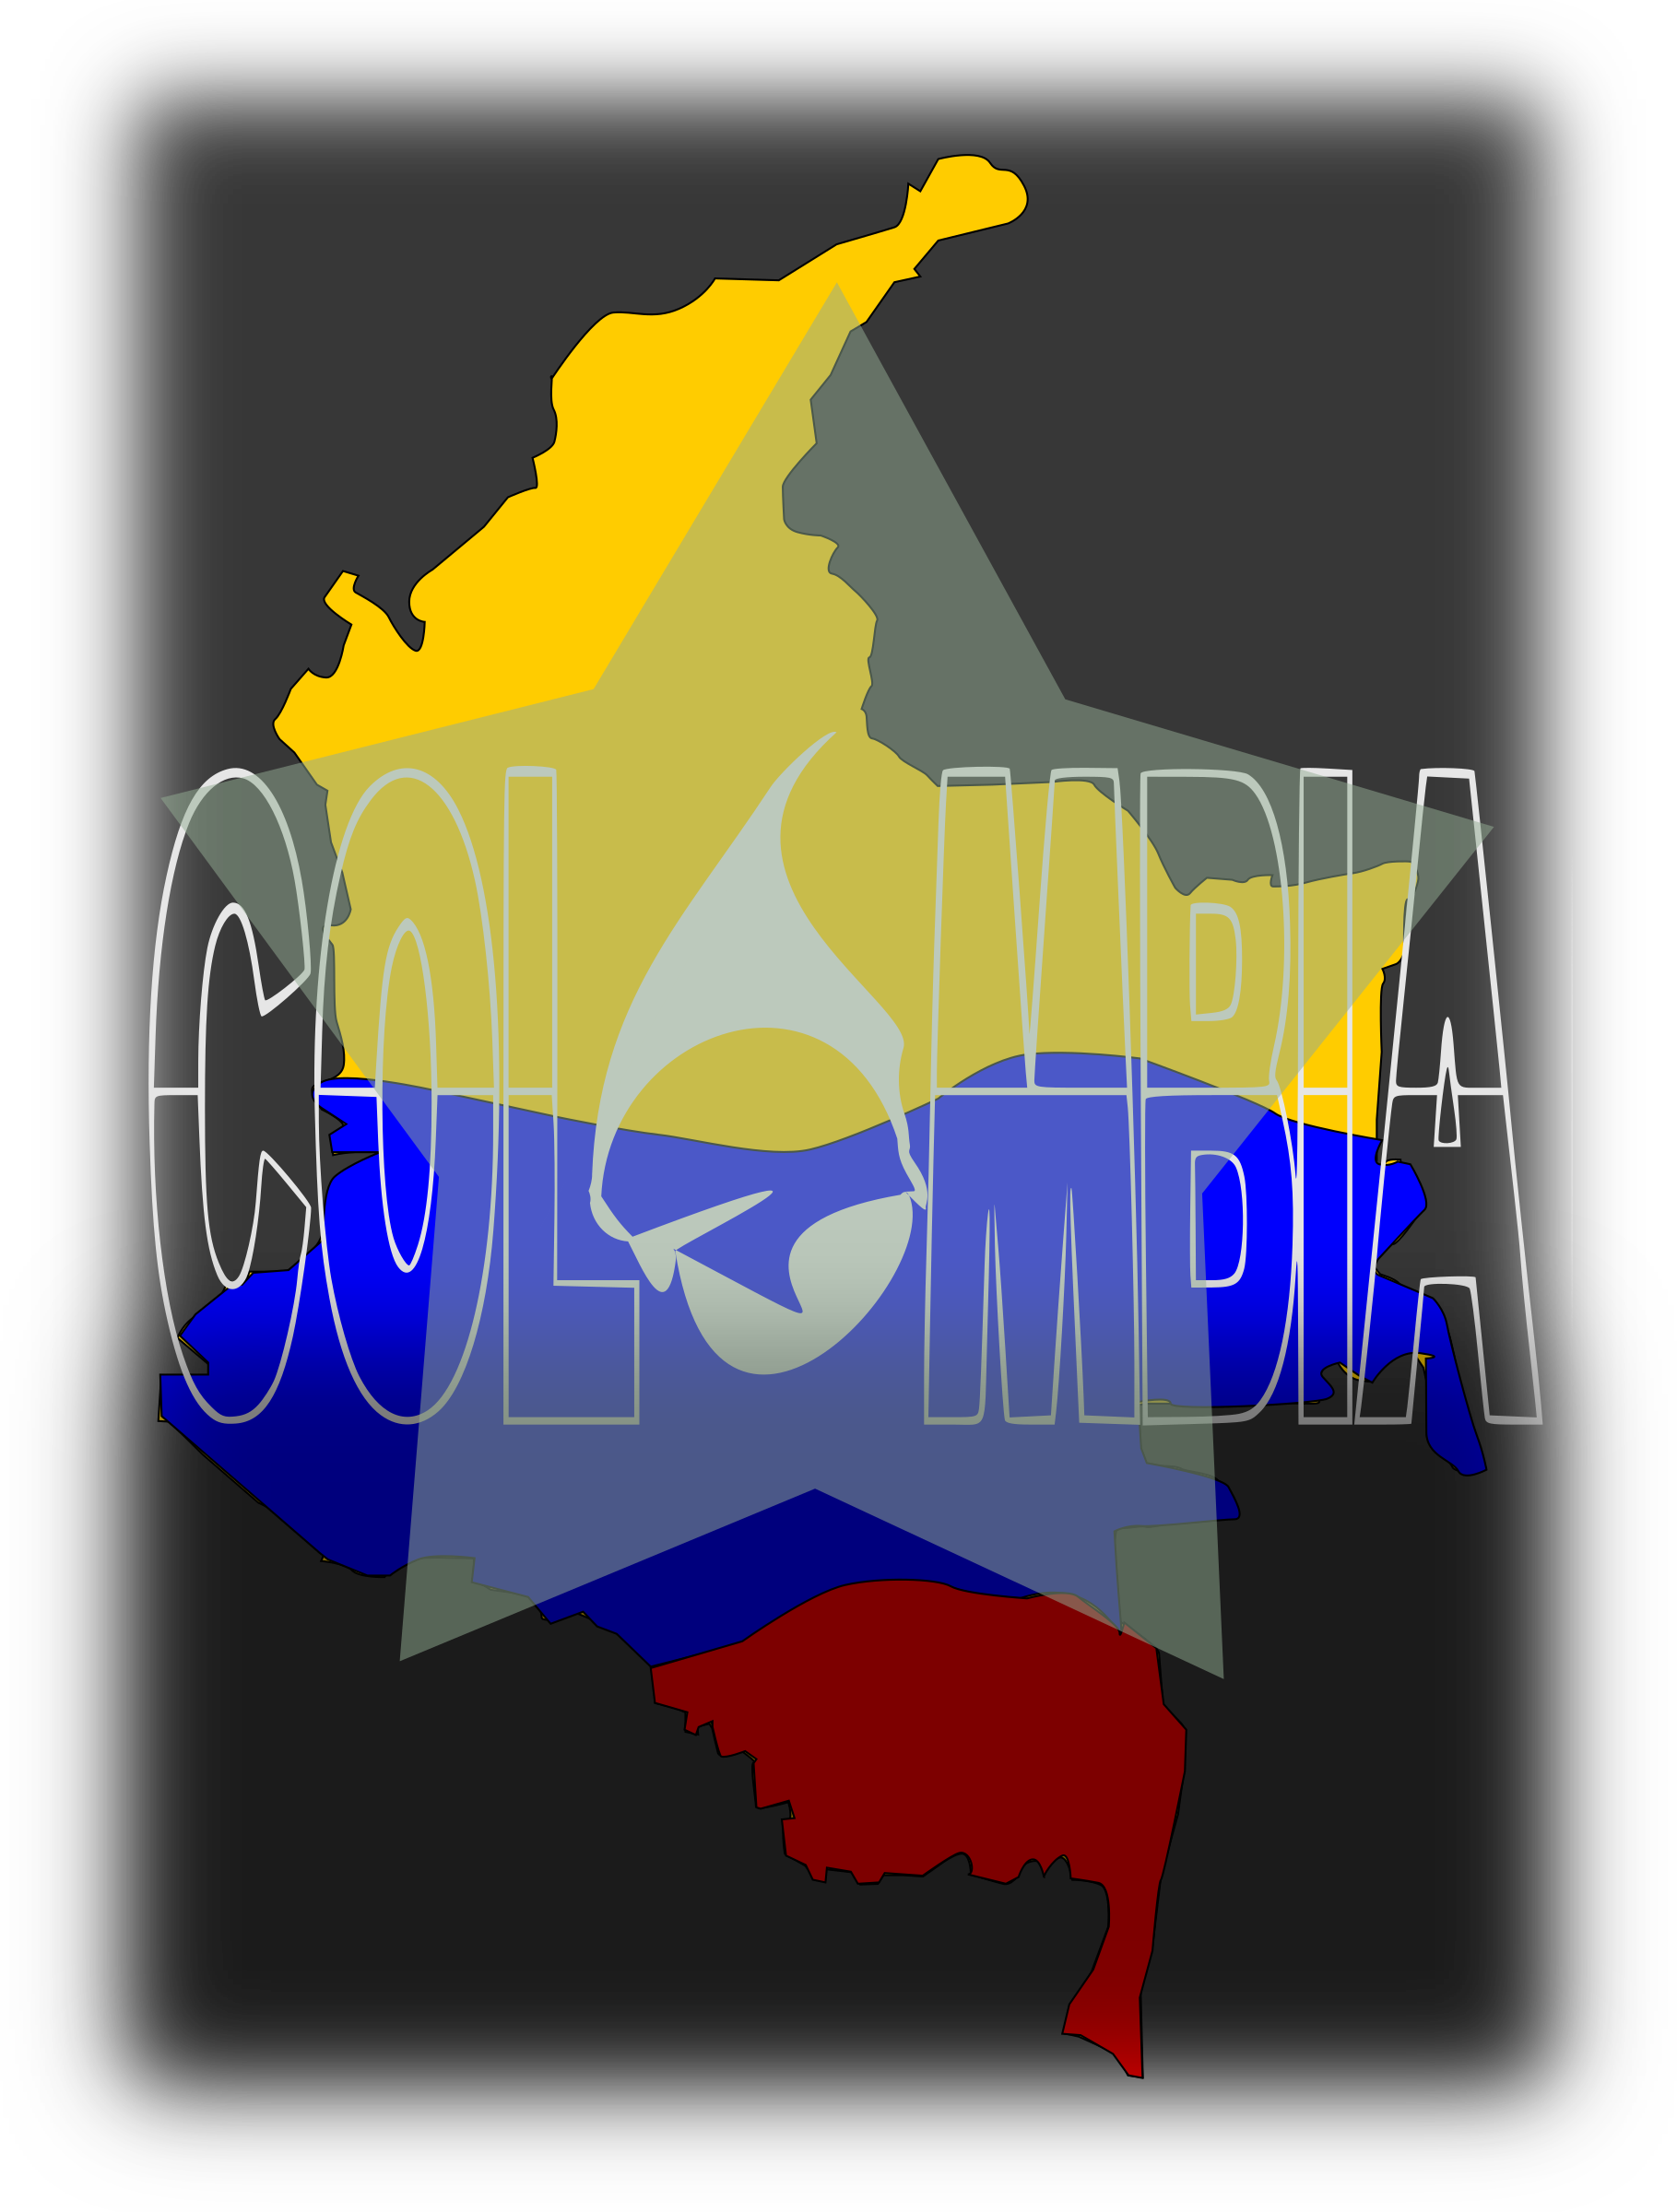 colombia tiera querida by wilmerciti